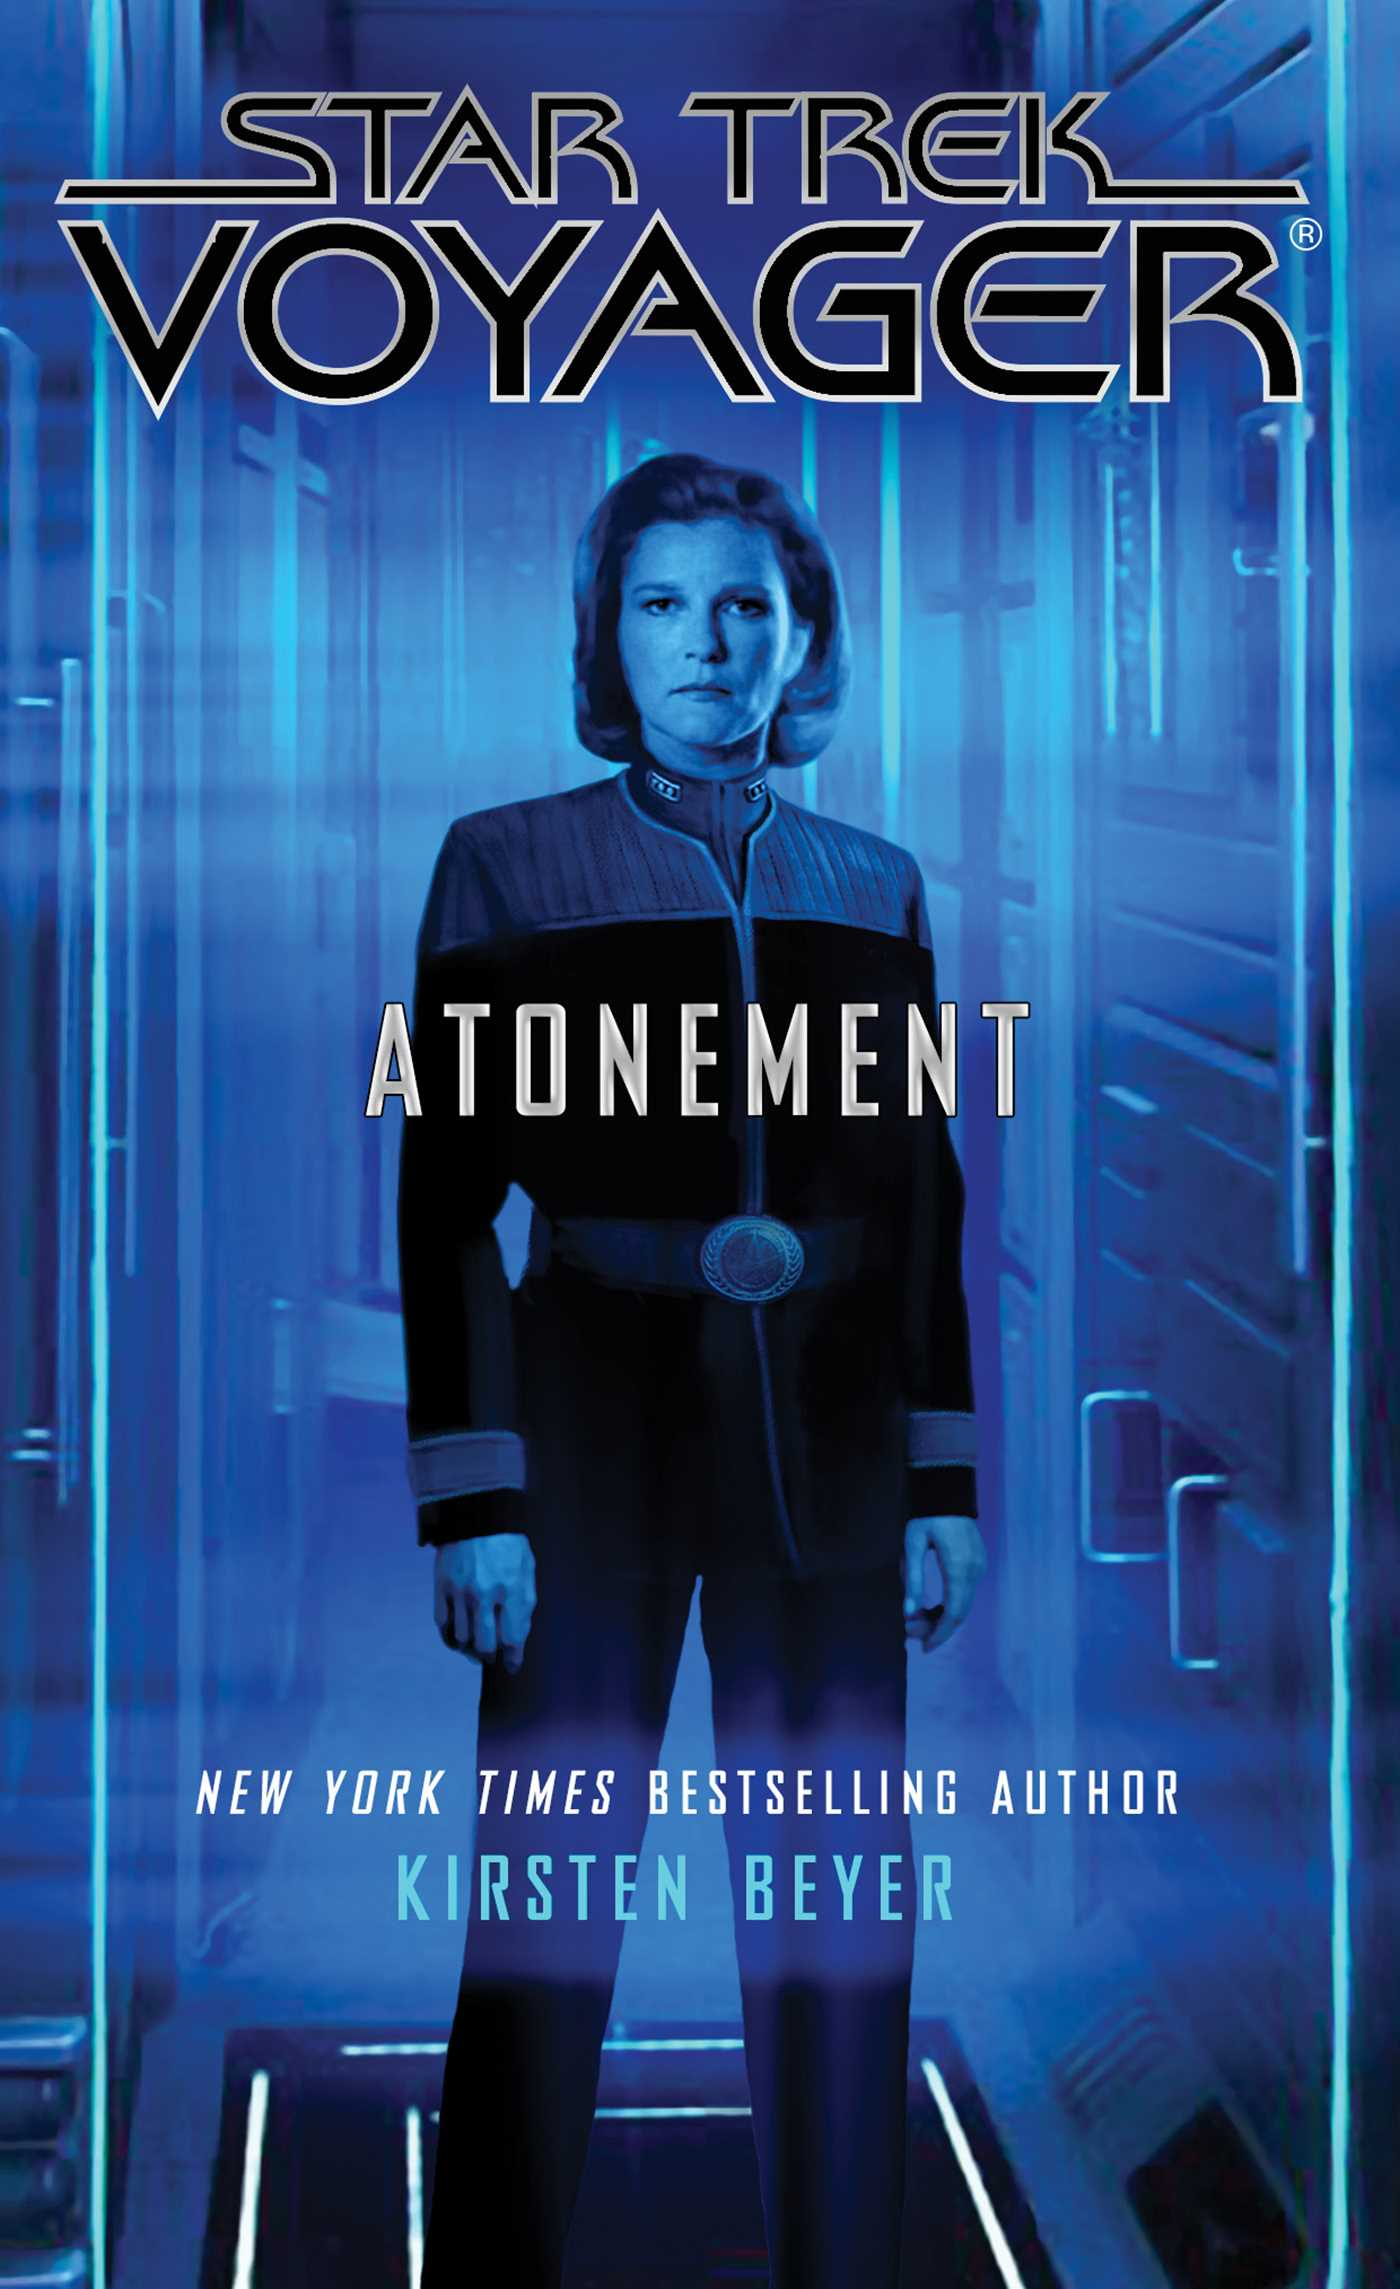 Star trek voyager atonement 9781476790817 hr